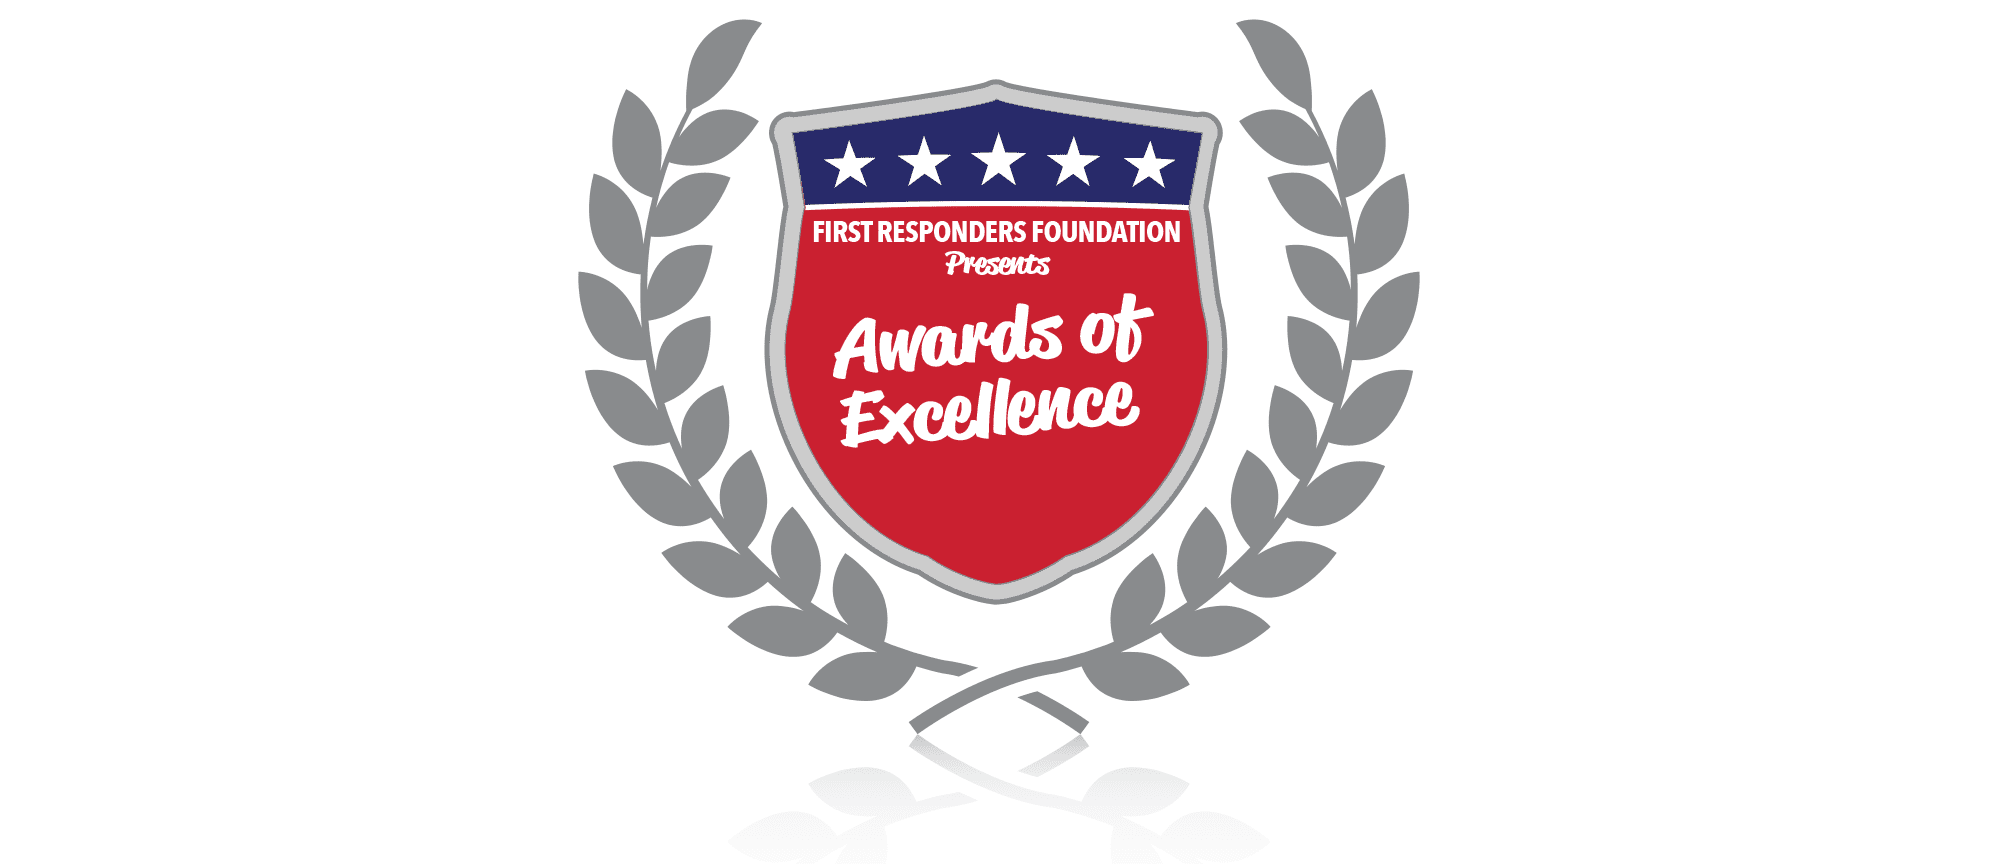 2020 Awards of Excellence Recipients Announced